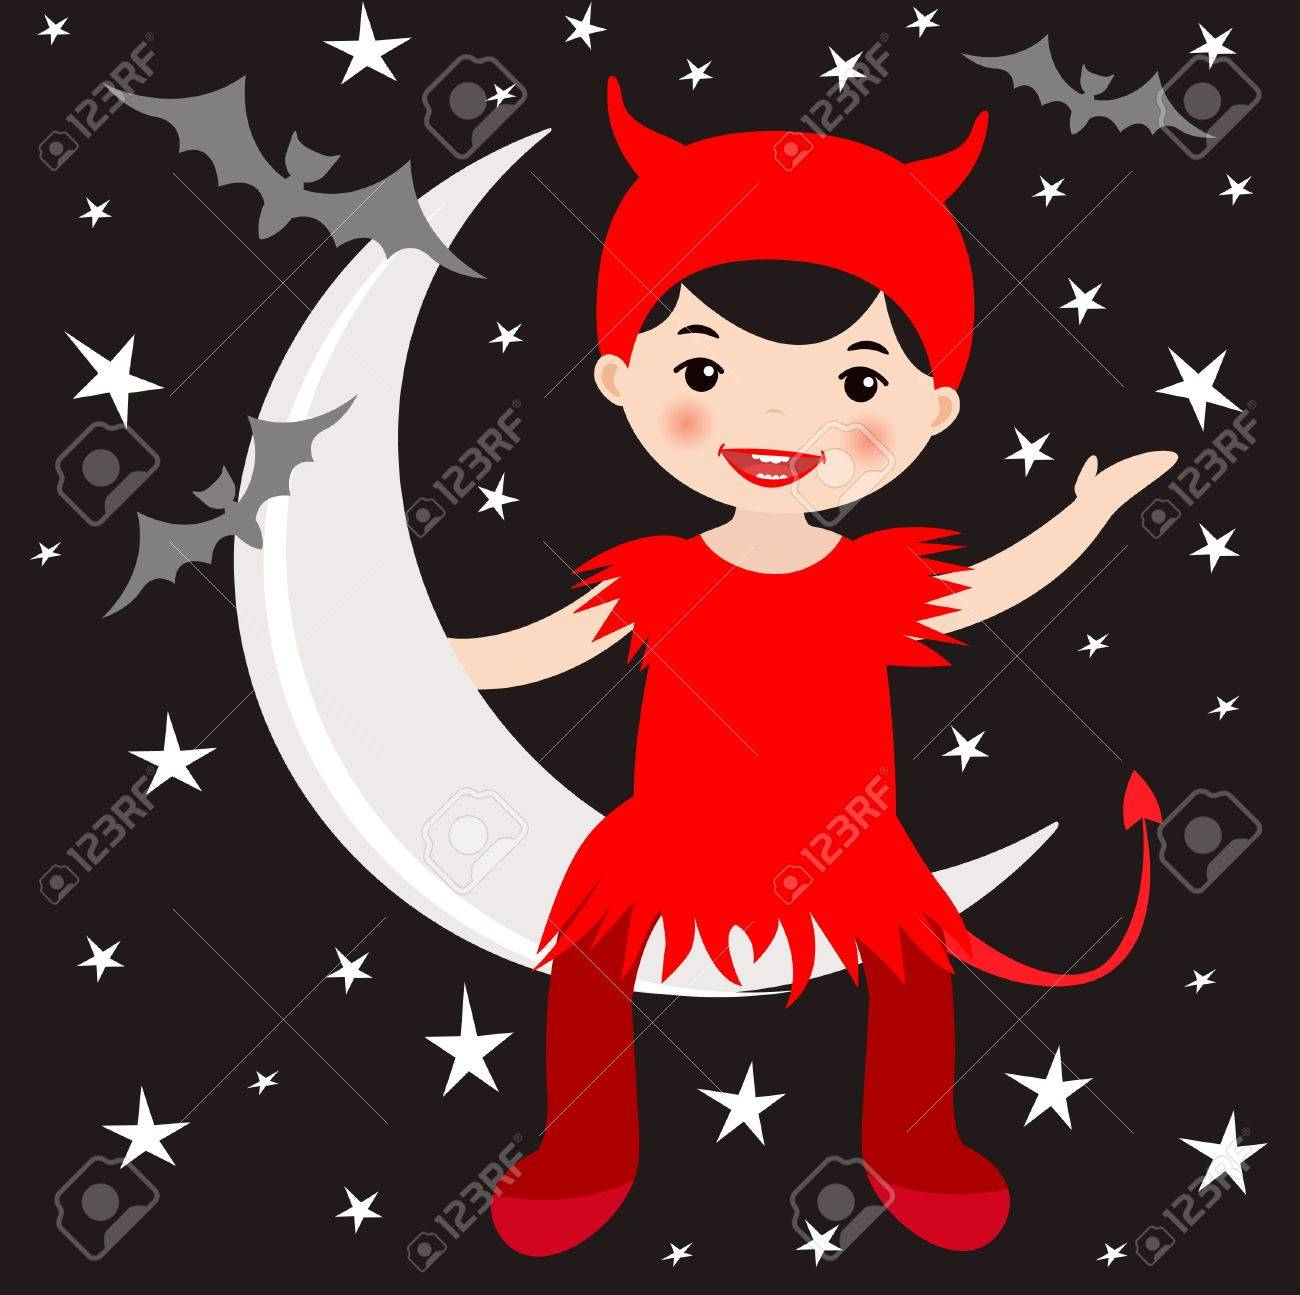 An illustration of a cute girl in devil costume sitting on the moon - 14973191